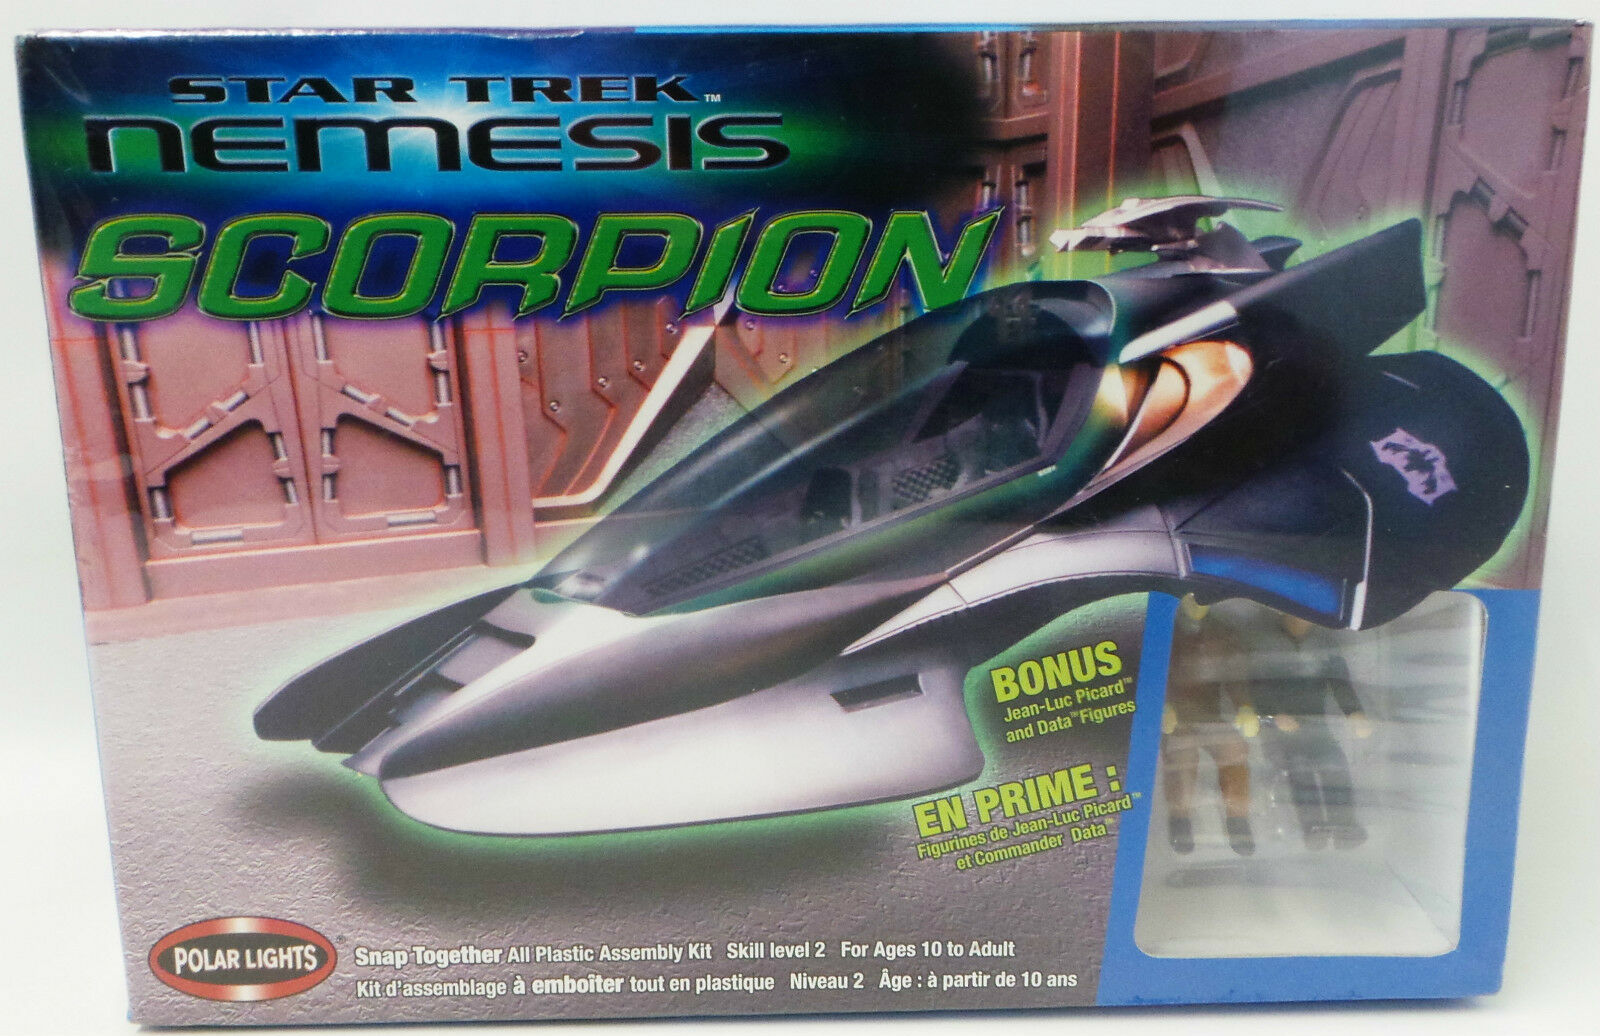 STAR TREK   NEMESIS   SCORPION MODEL KIT MADE BY POLAR LIGHTS IN 2005 (MH)